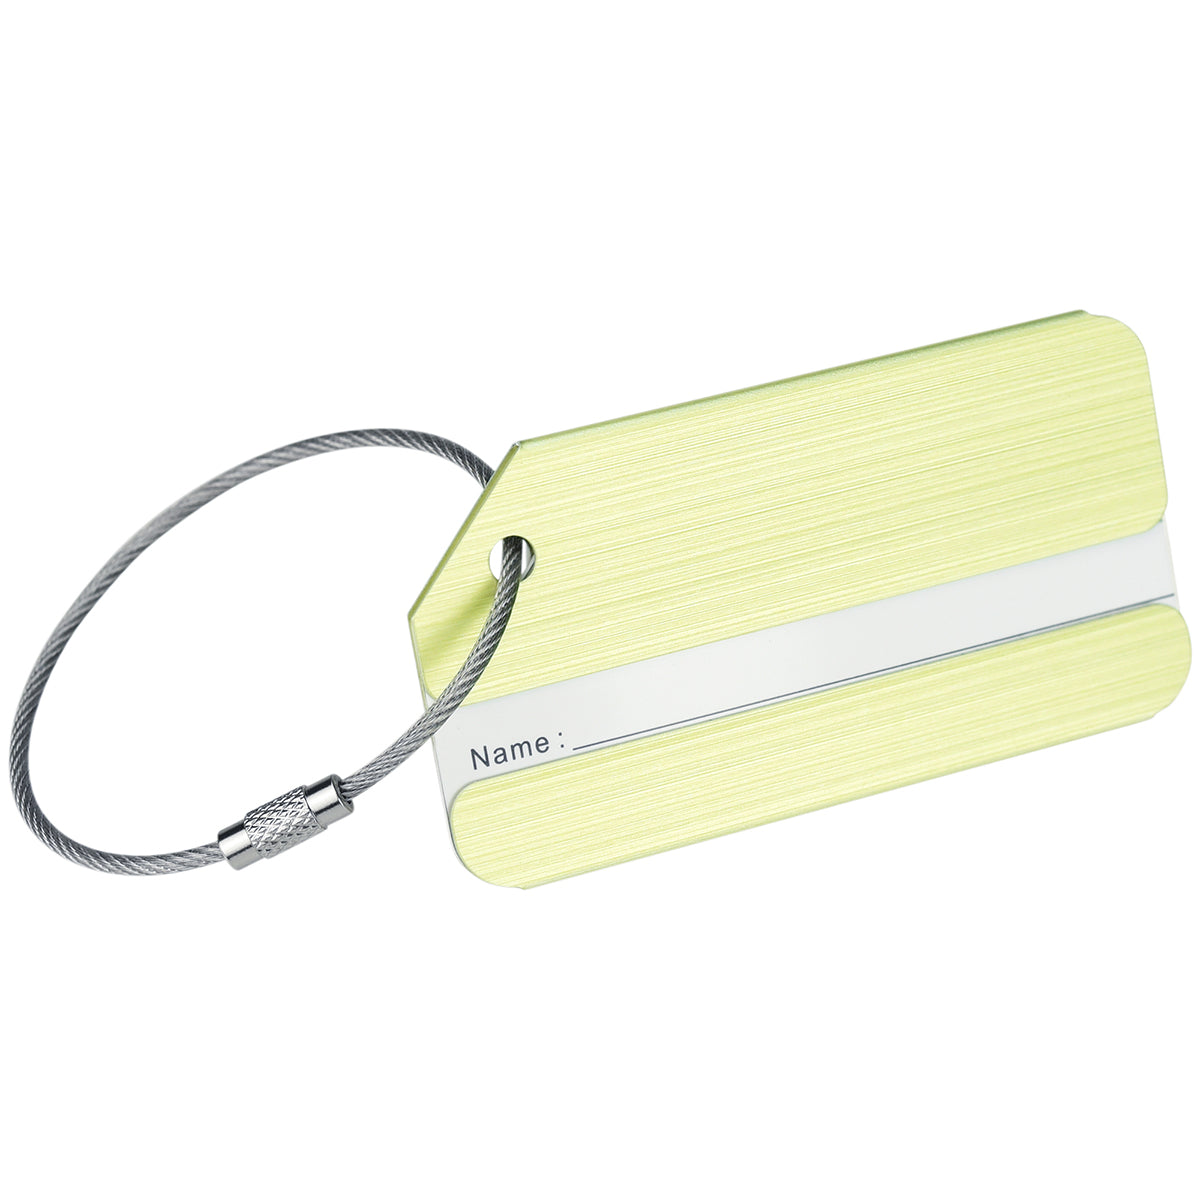 A light yellow brushed aluminum luggage tag that is designed to show 'name' only, display with a white background. The luggage tag has locking ring.